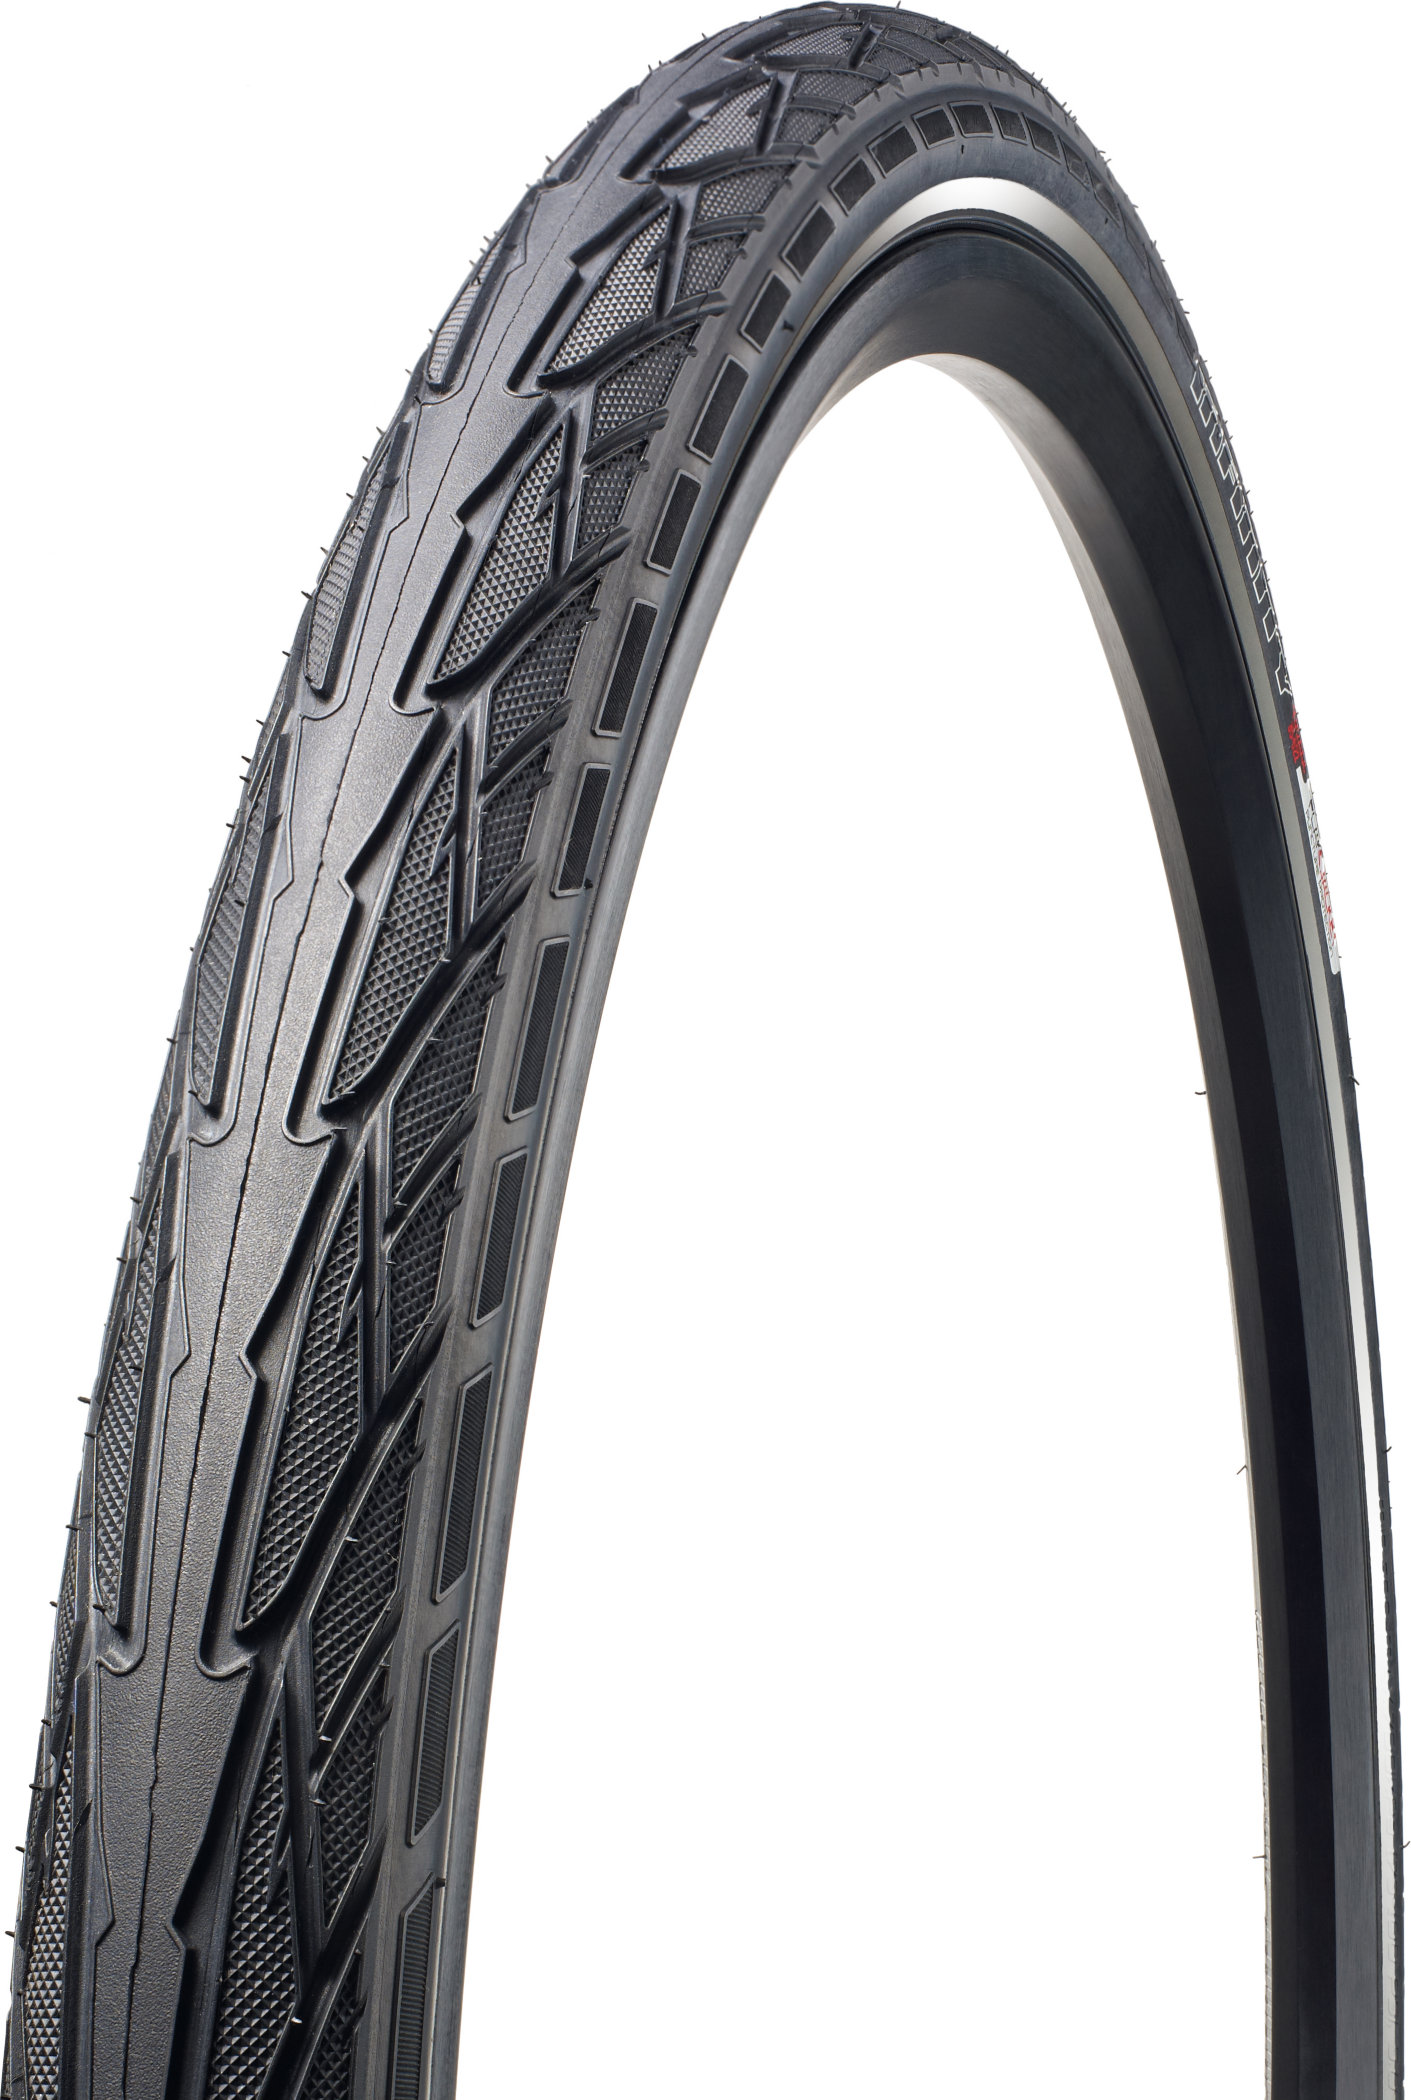 SPECIALIZED INFINITY SPORT REFLECT TIRE 700X47C - Alpha Bikes